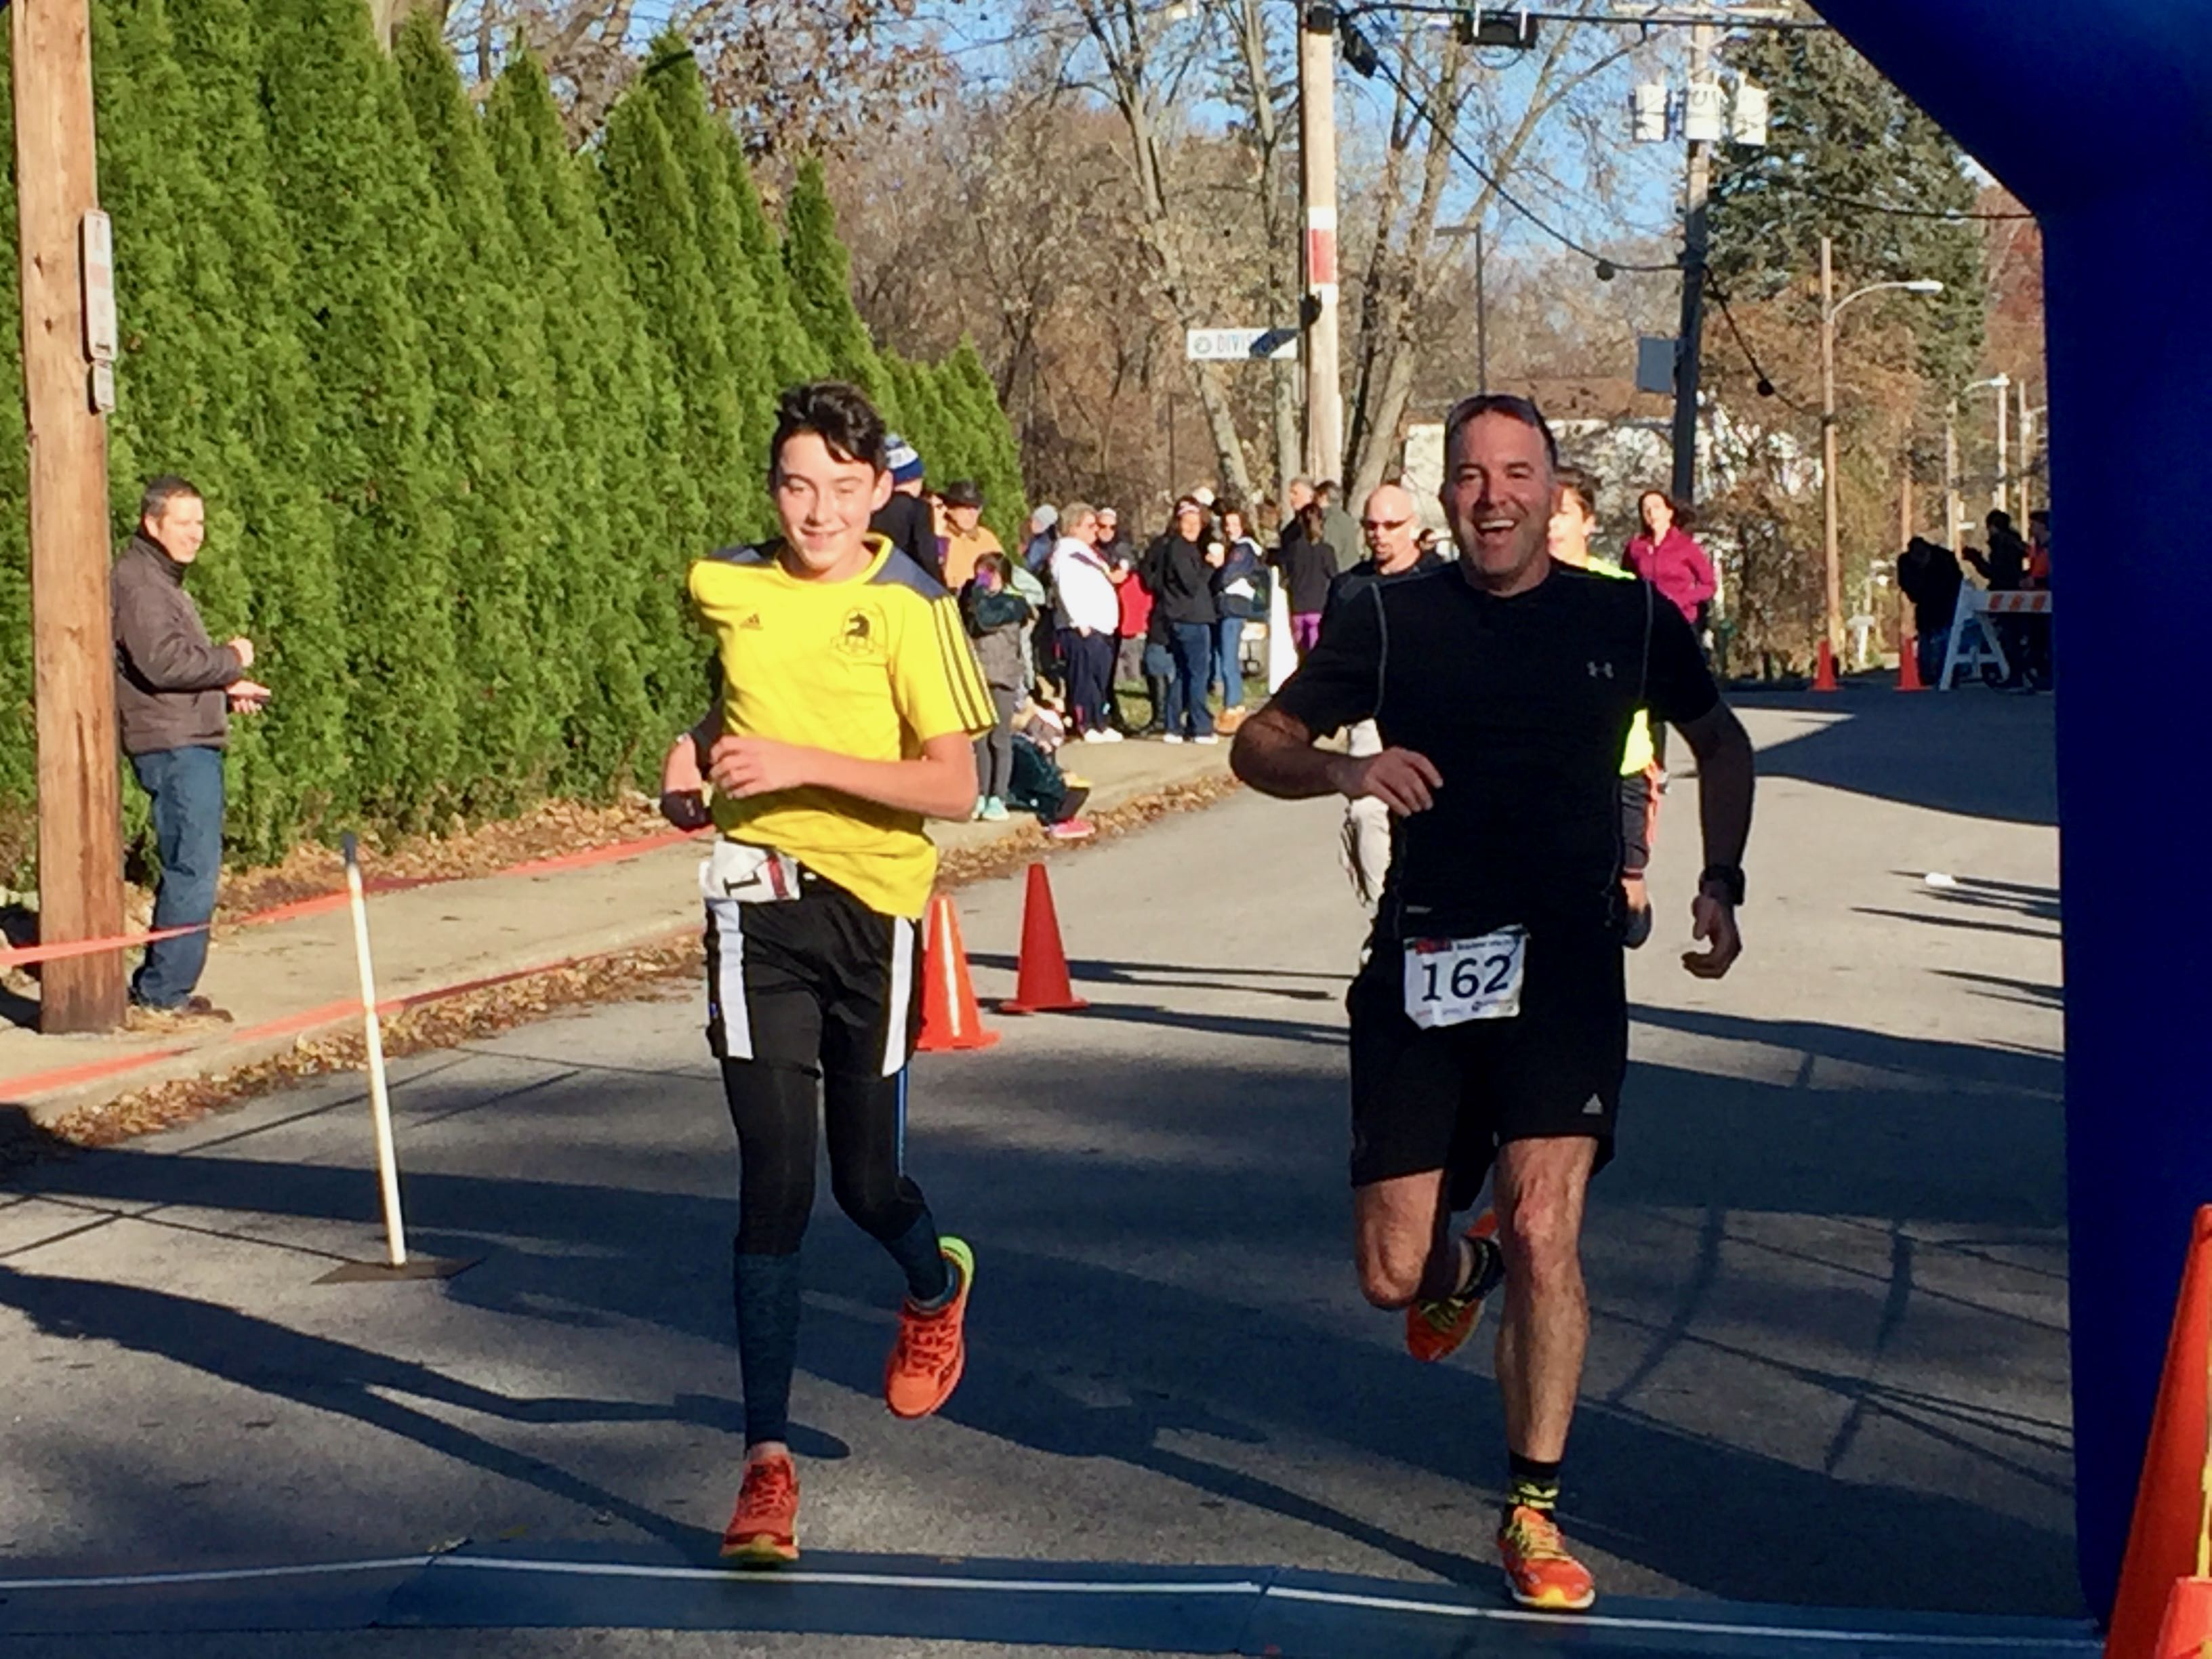 Jeremy and Joshua Jarbeau cross the finish line.